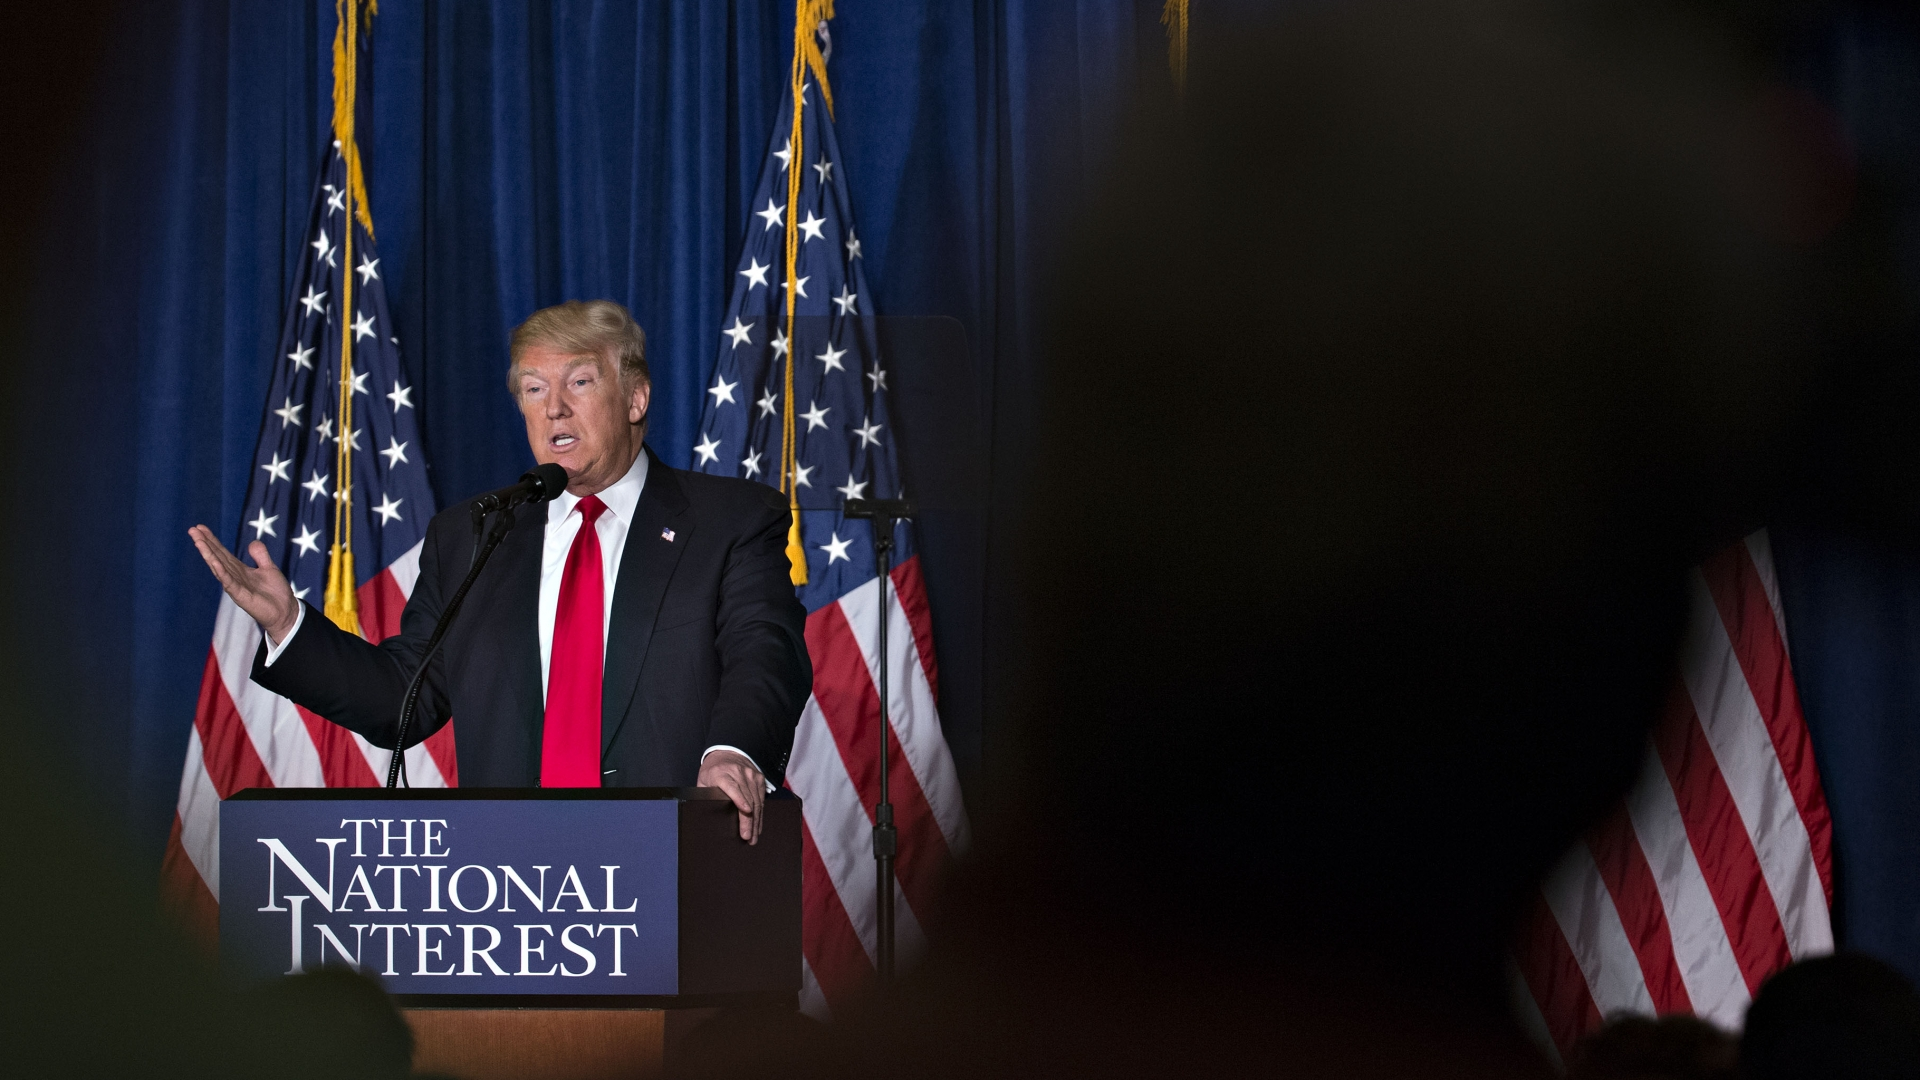 President Donald Trump during an address on foreign policy, 2016. (Credit: Andrew Harrer/Bloomberg via Getty Images)